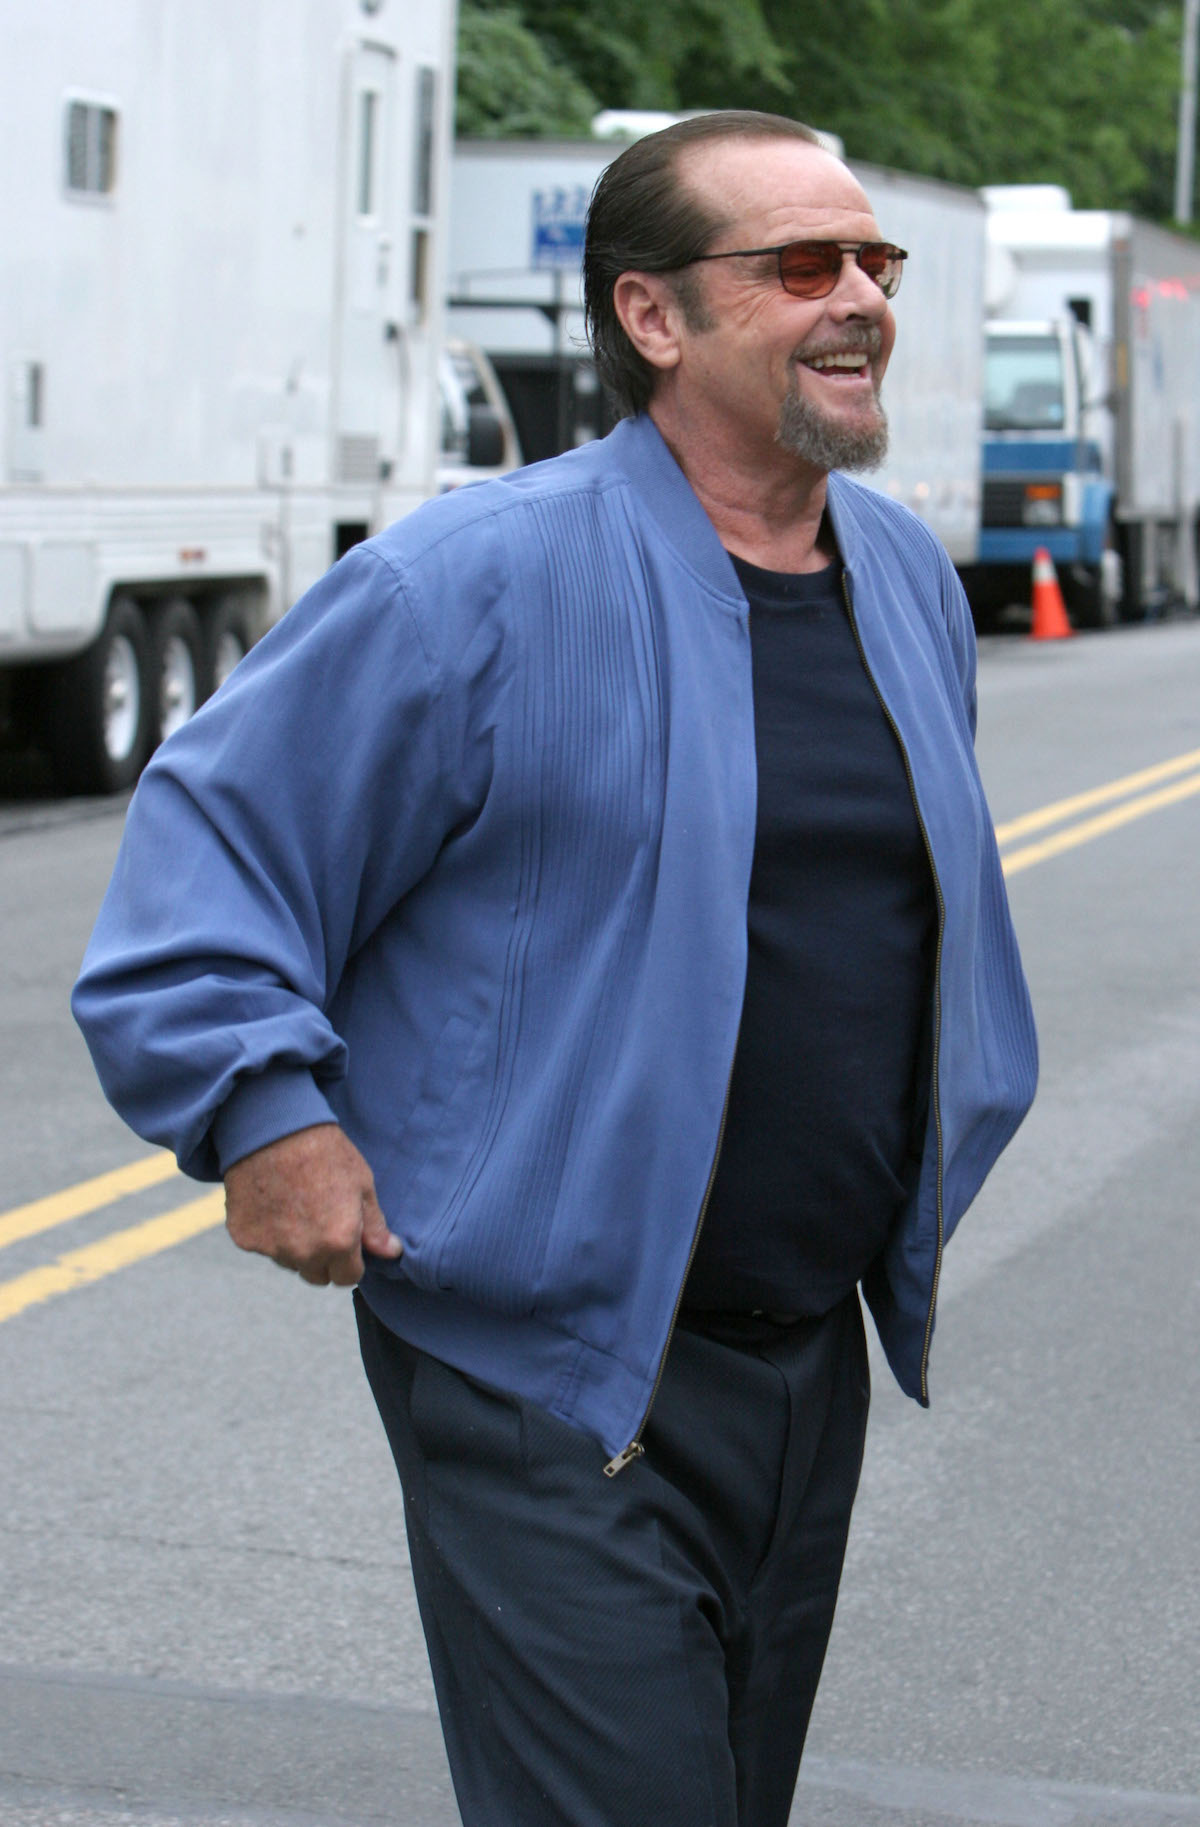 Jack Nicholson smiles wearing sunglasses, jeans, and a blue jacket on location for 'The Departed' in 2005